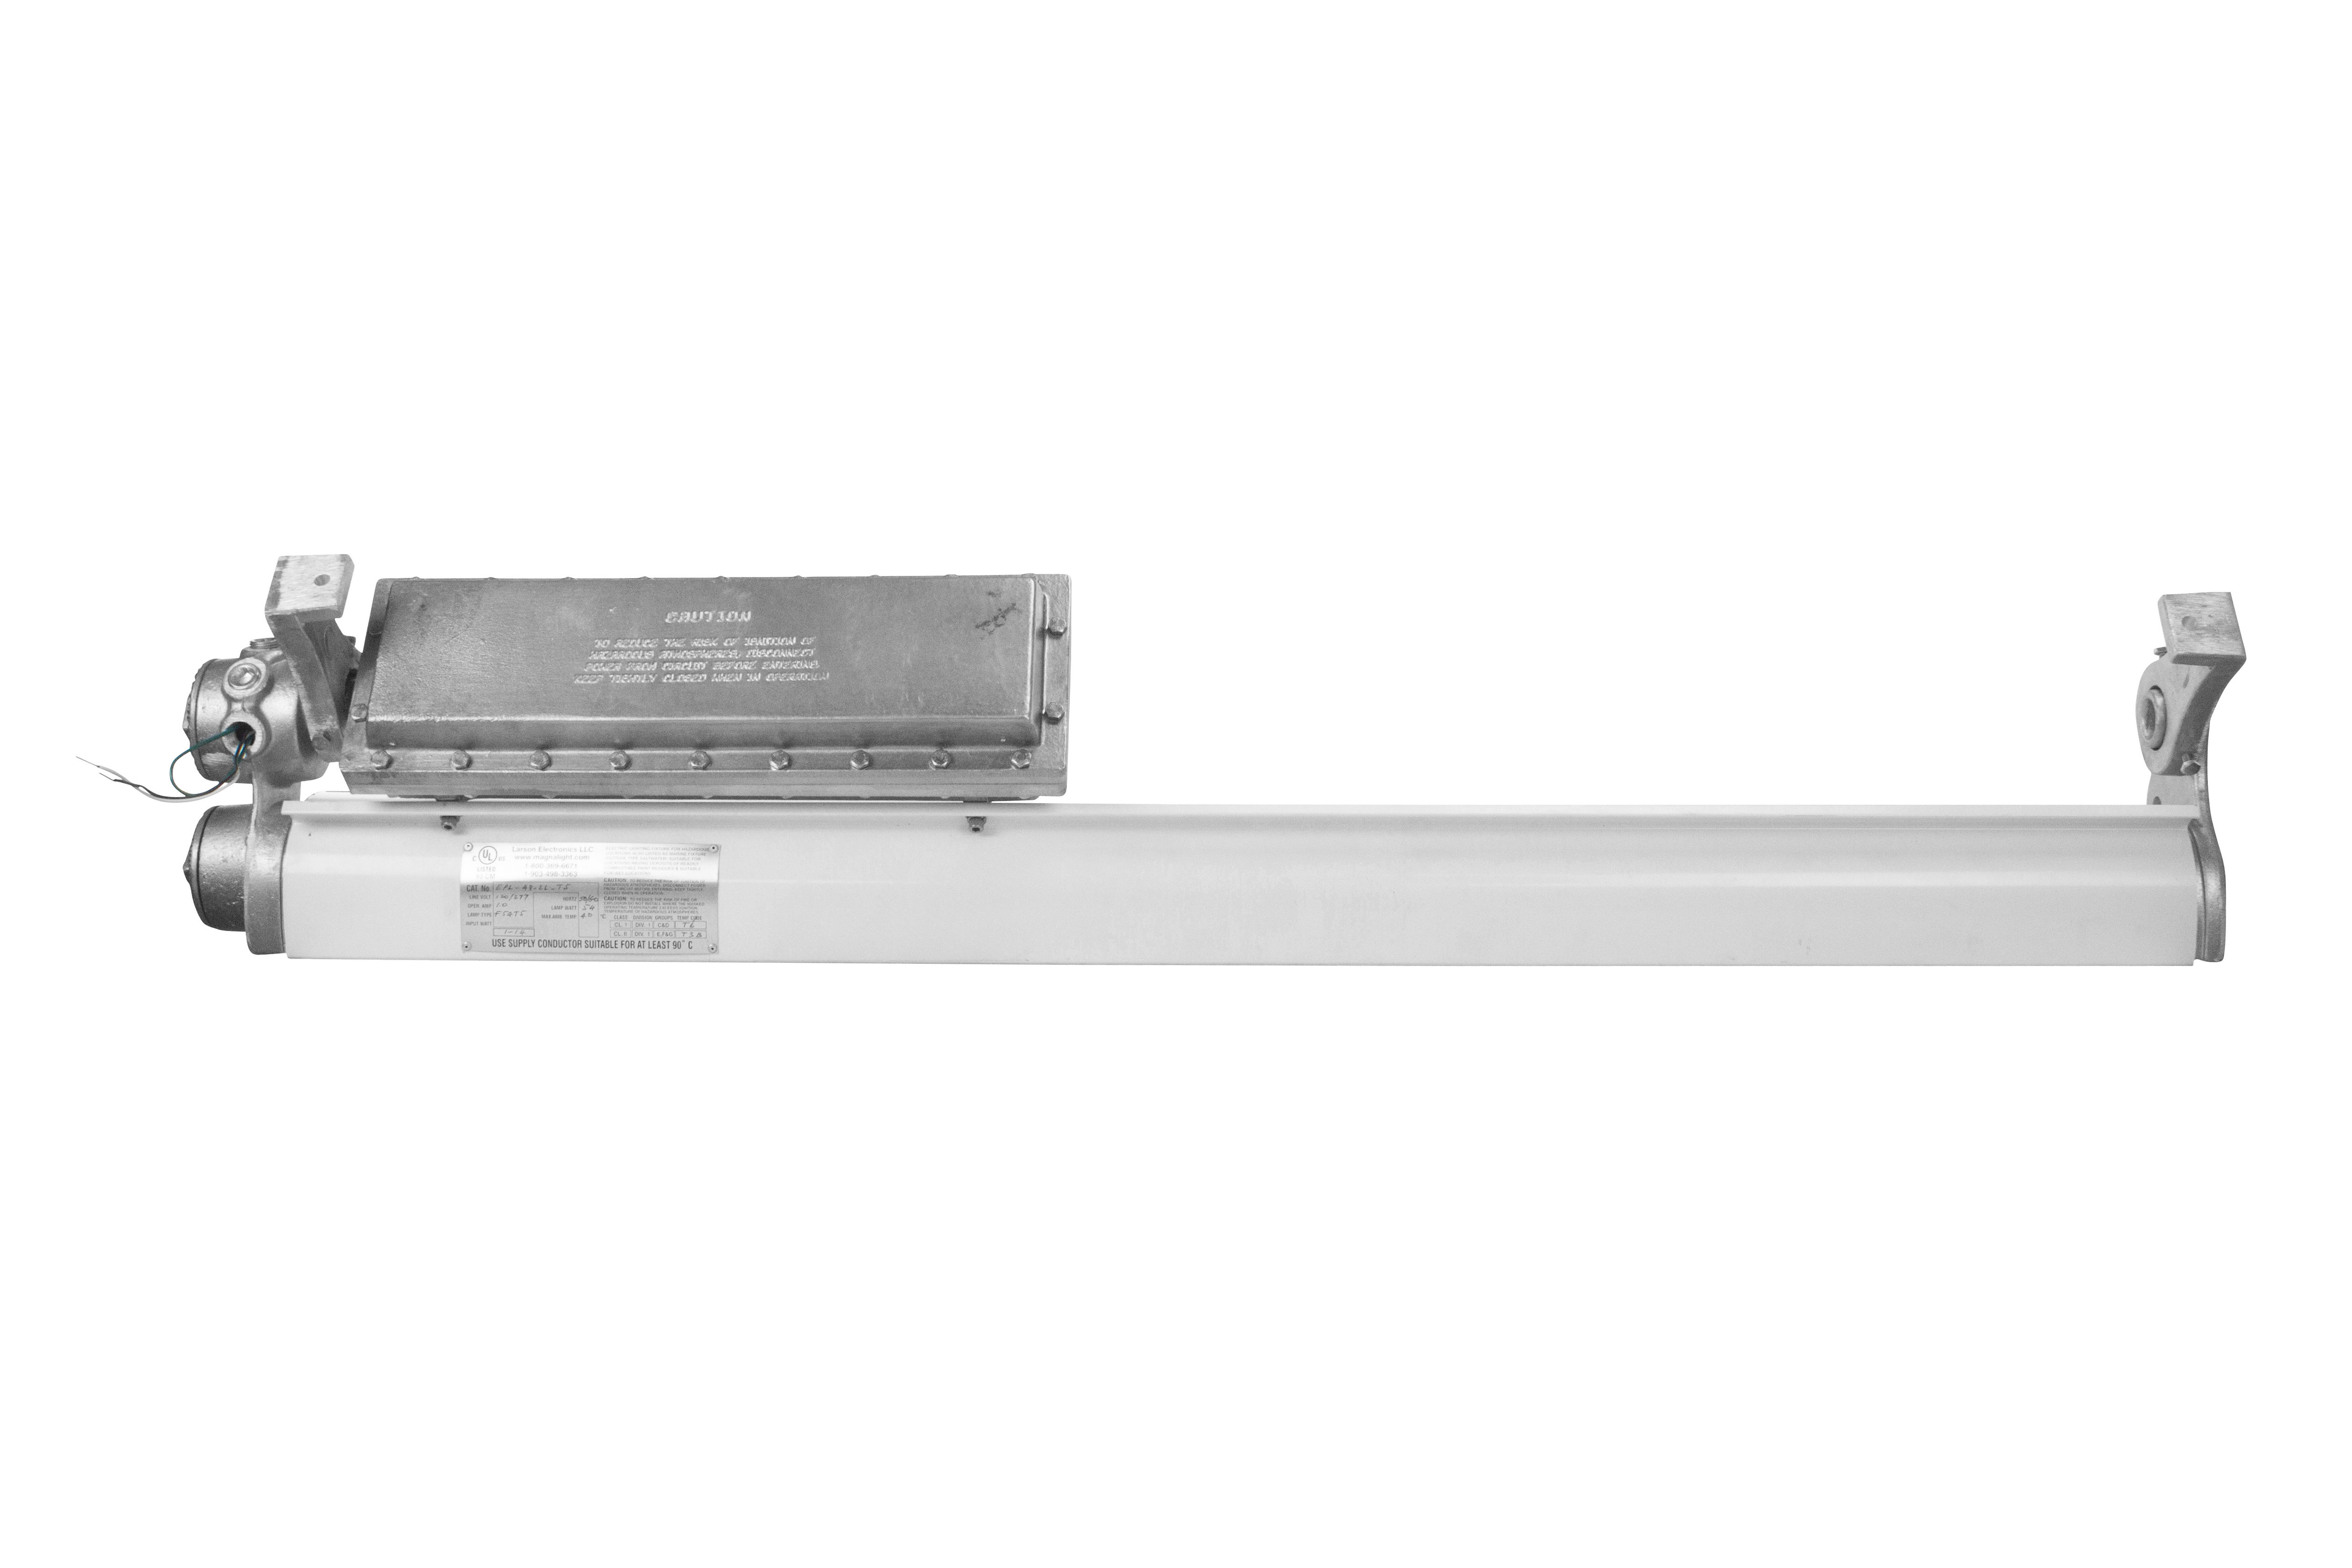 Larson Electronics Releases a Single Lamp Explosion Proof ...